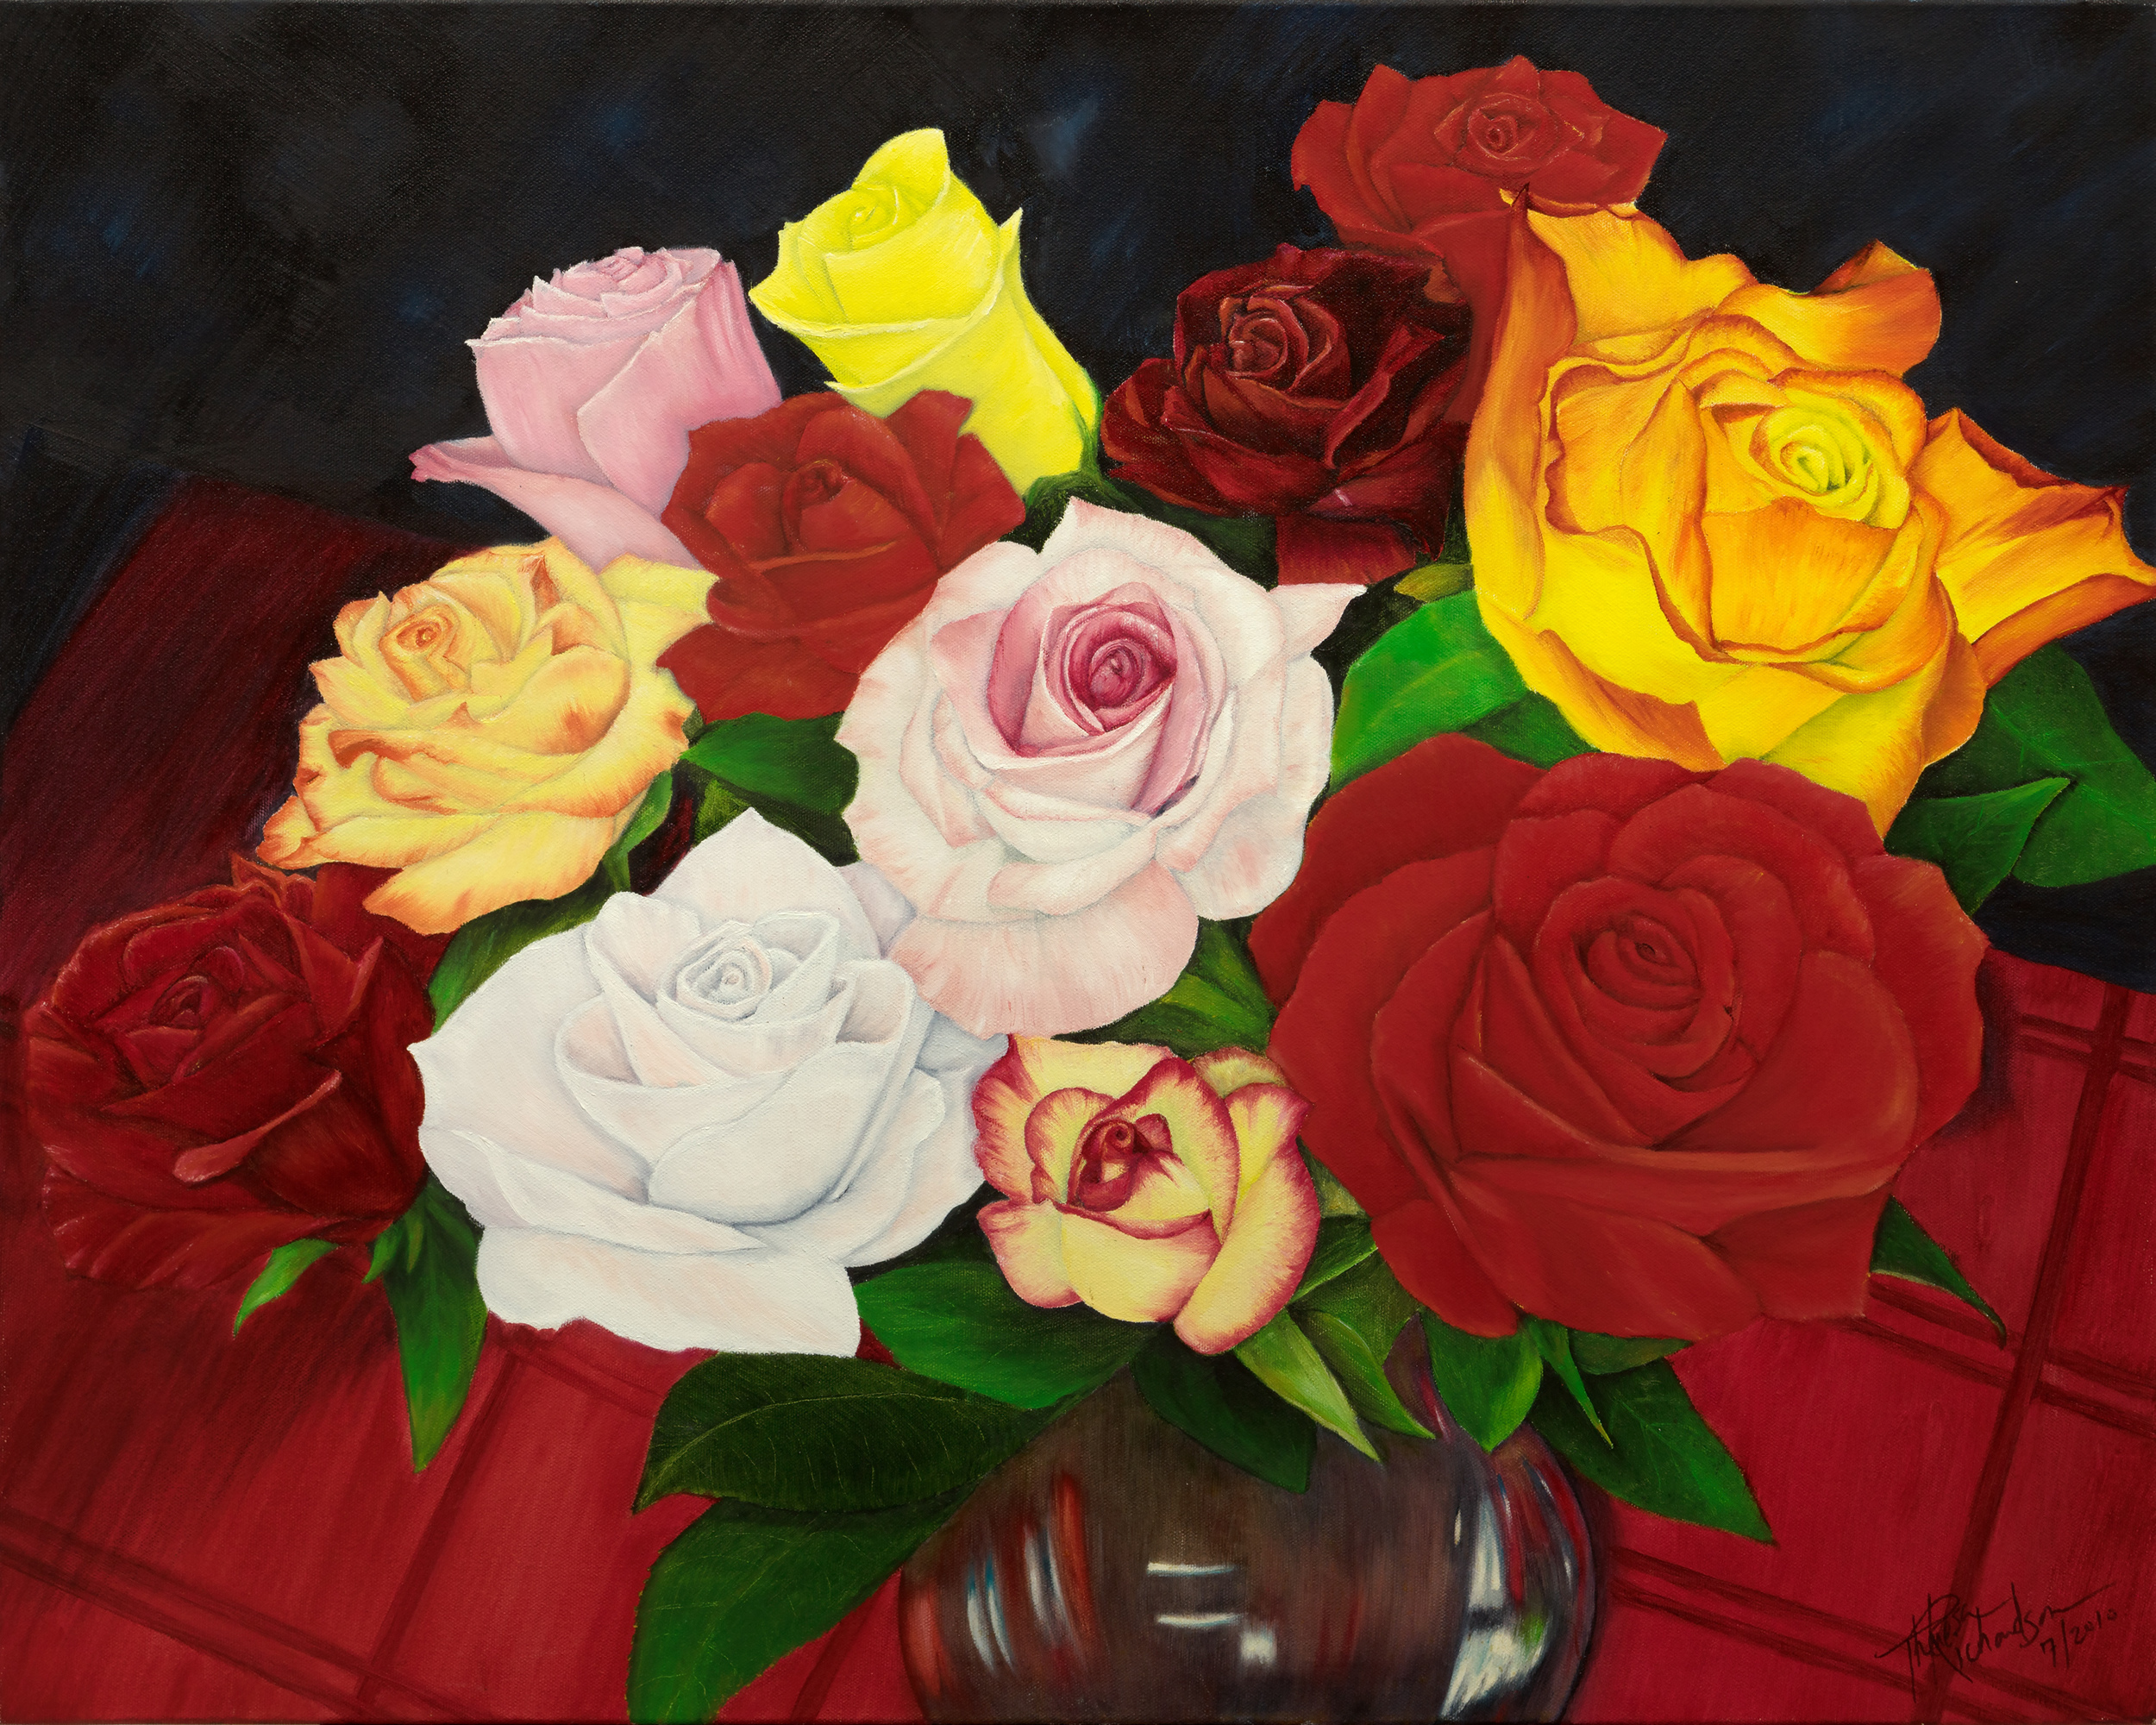 Splendid Bouquet   , 2010, oil on canvas, 20 x 24 inches